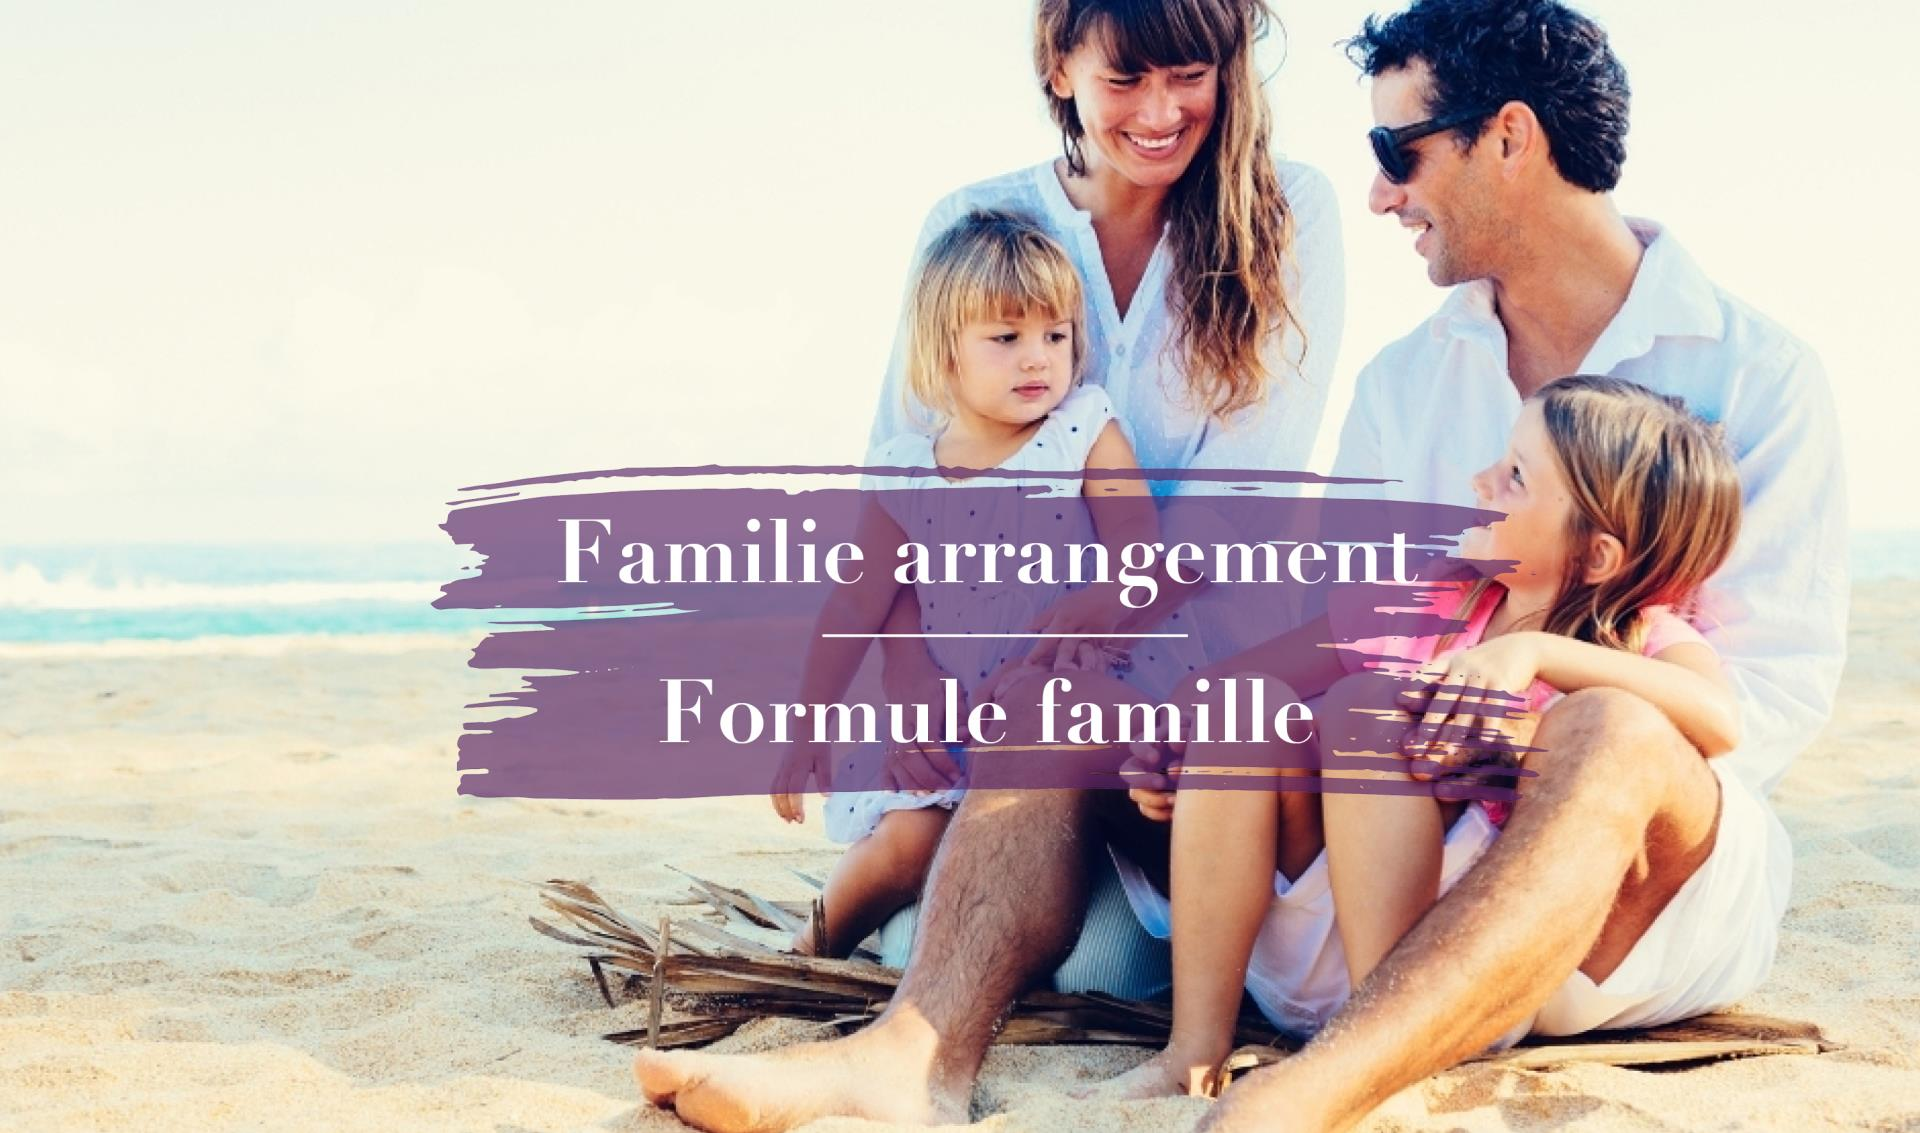 Familie arrangement